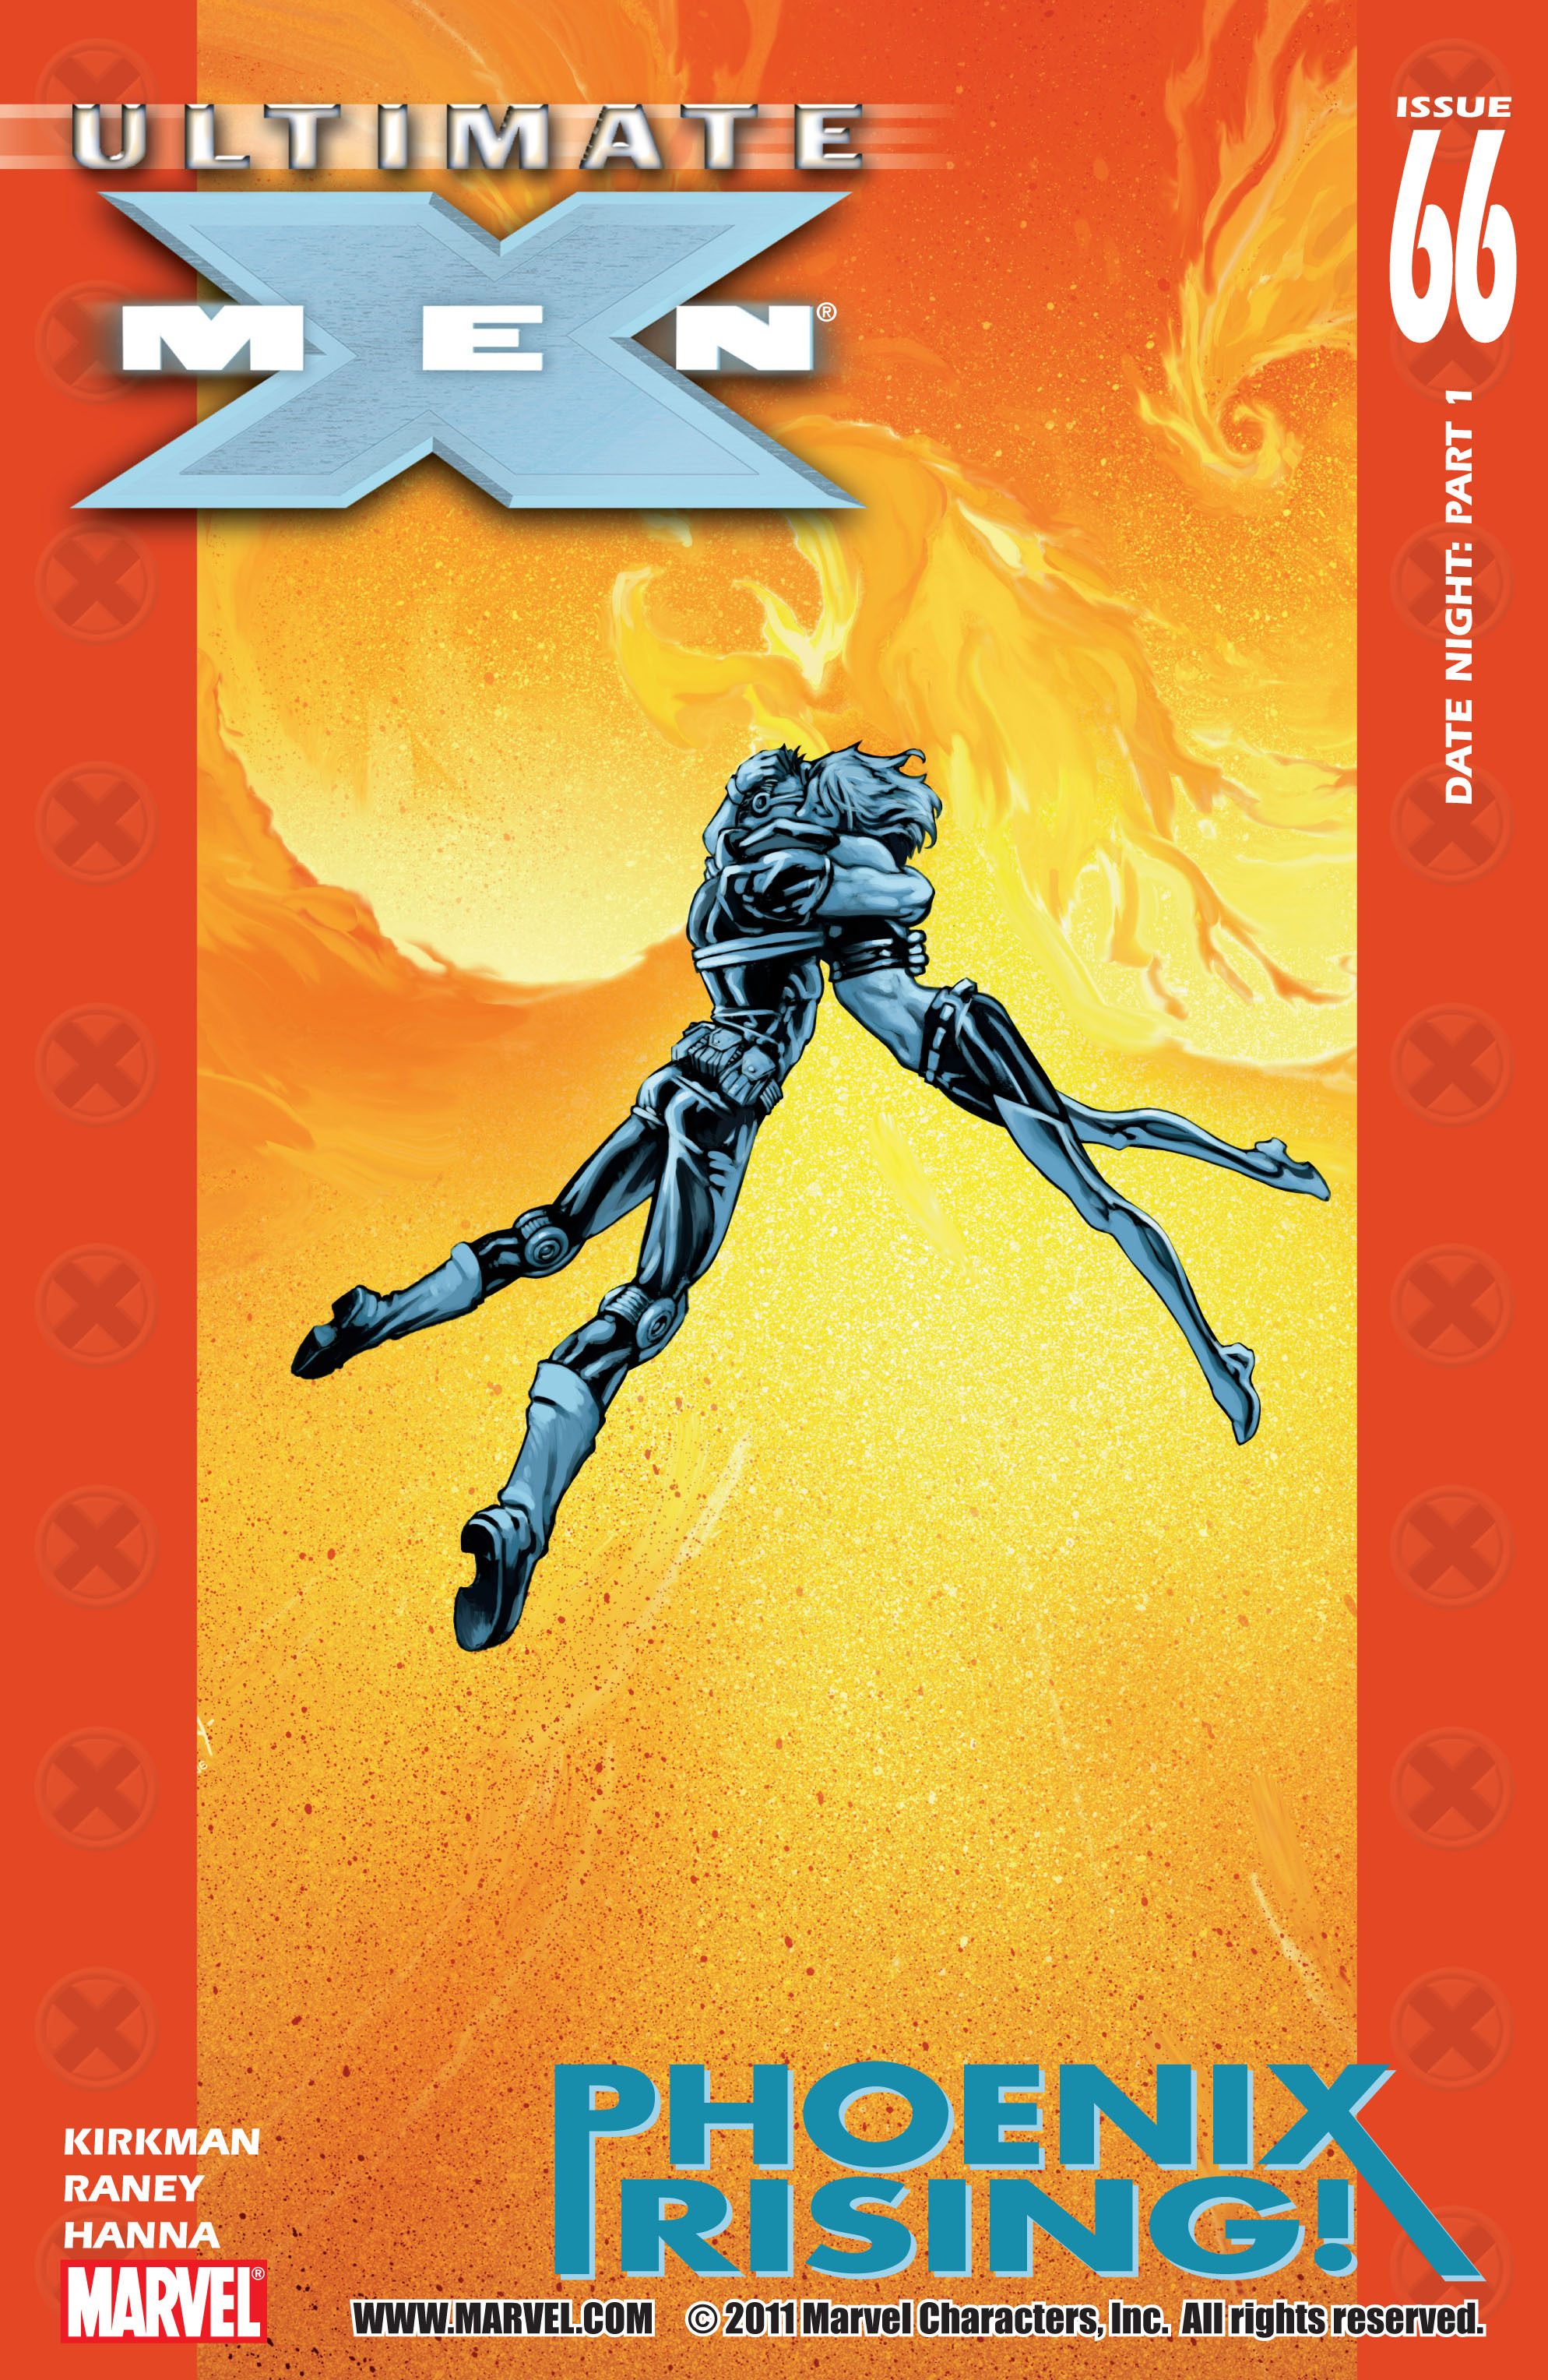 Read online Ultimate X-Men comic -  Issue #66 - 1